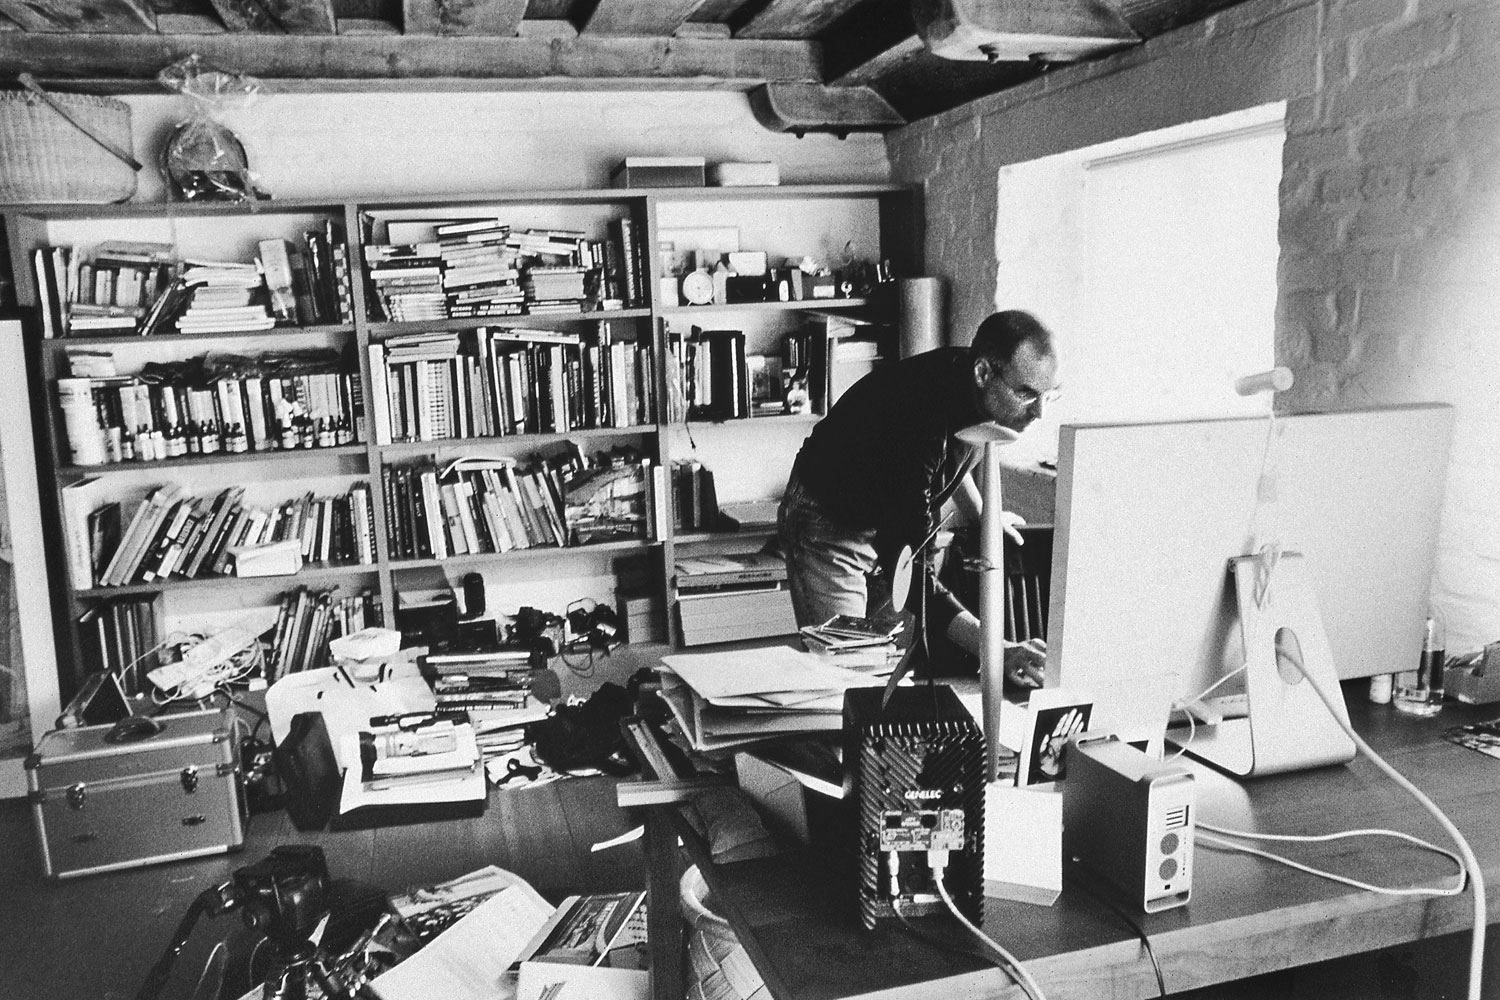 Jobs in his home office in December 2004, the last time Walker ever photographed him.